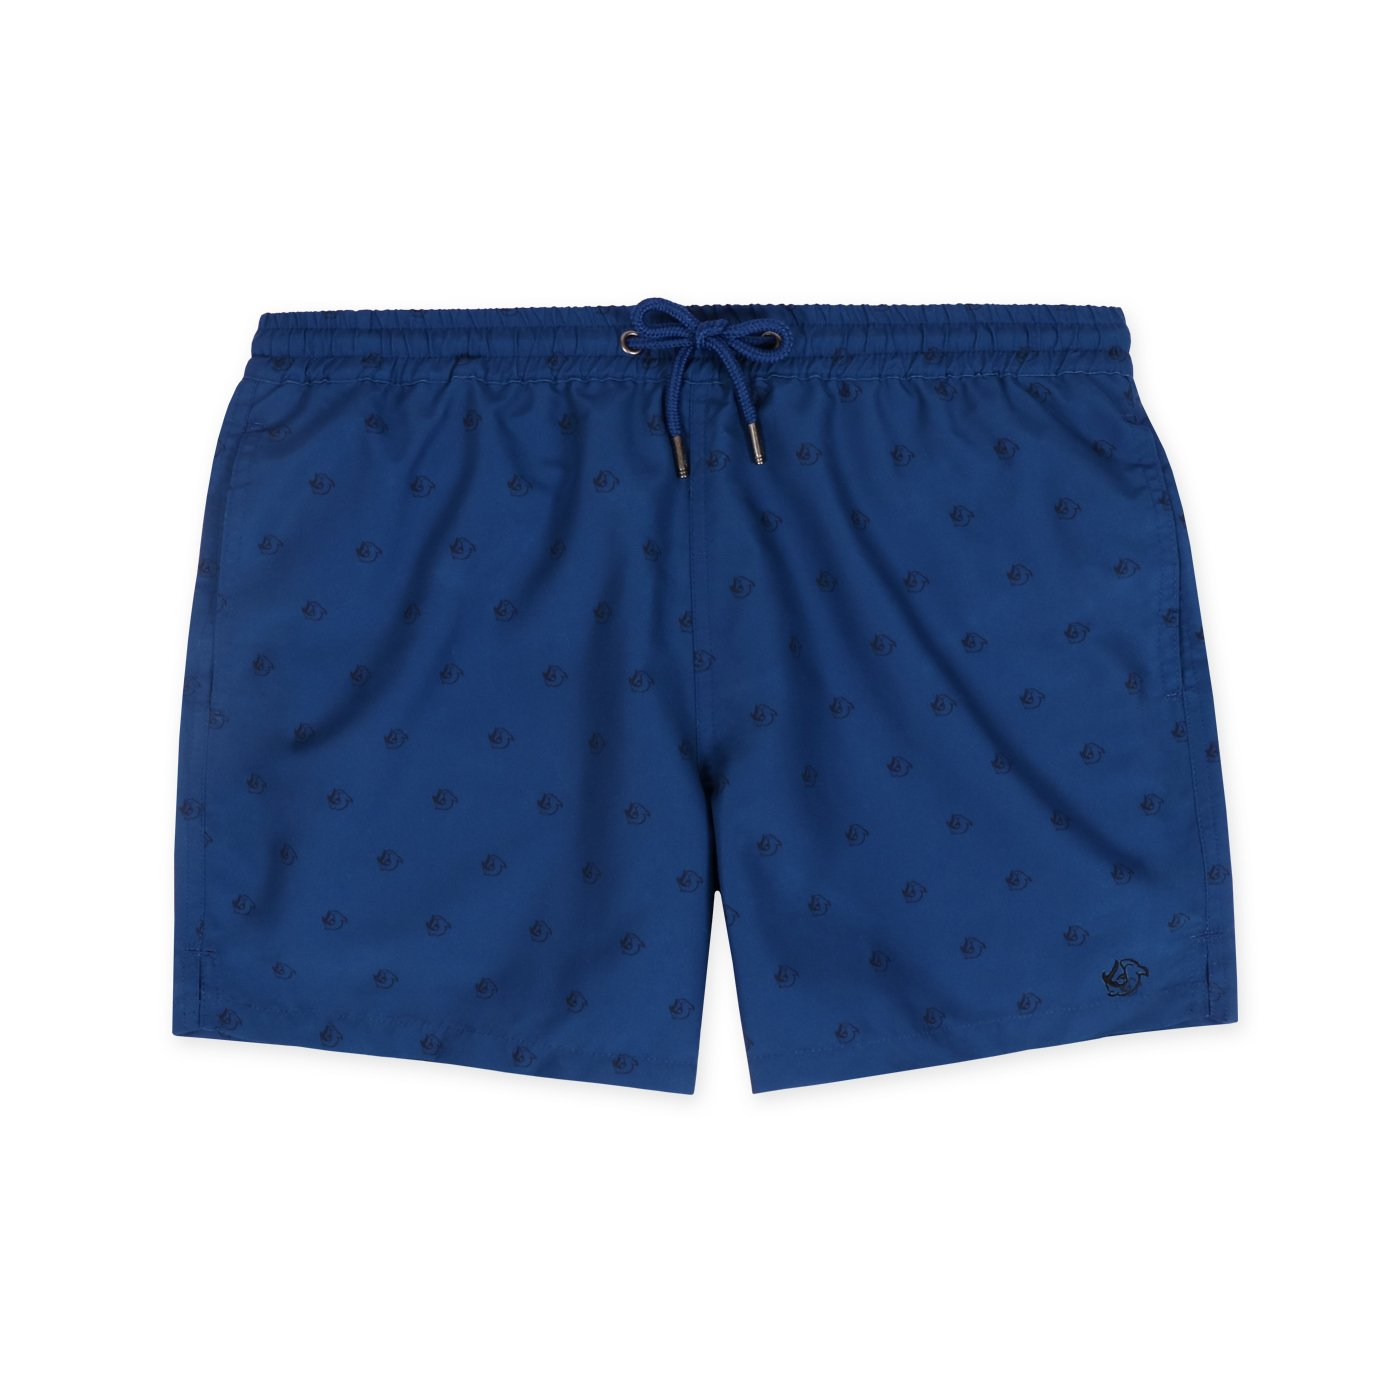 Original Weekend Swim Shorts - Shark Print in Navy